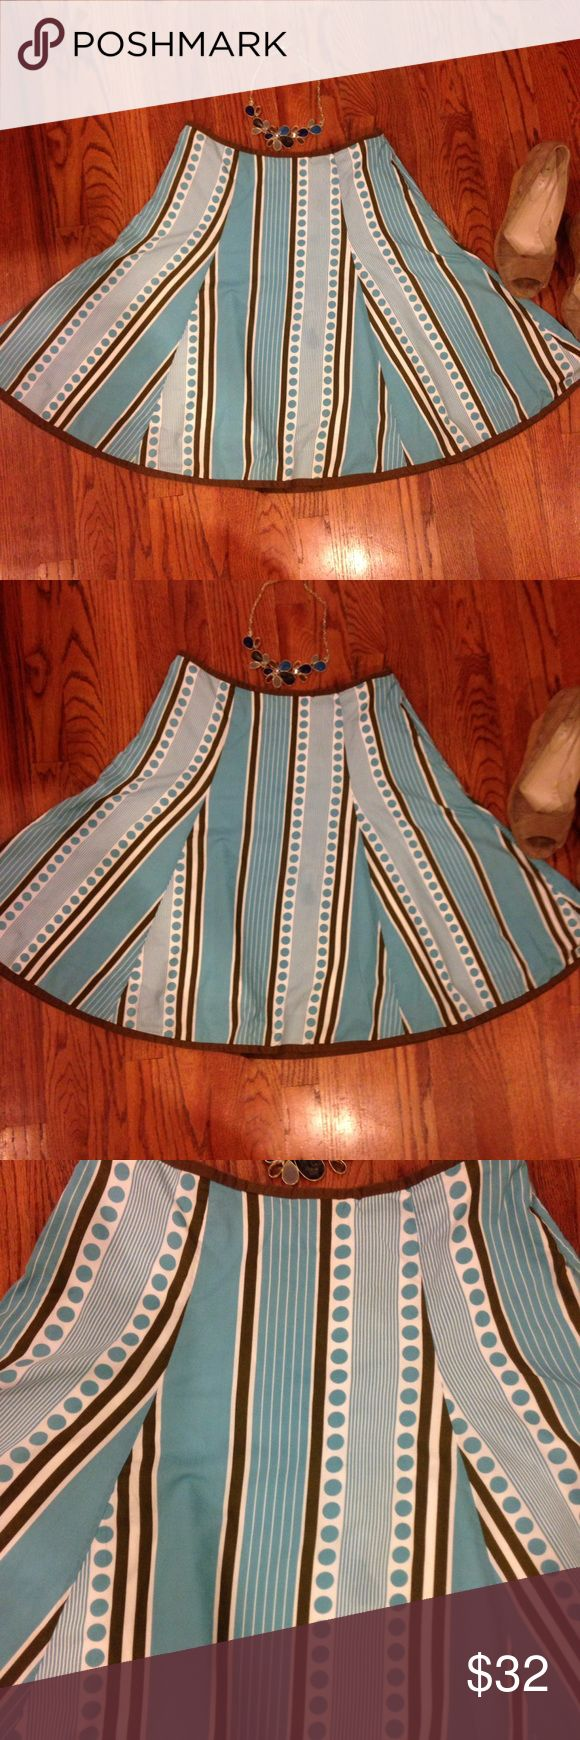 Boden summer skirt sz 8 teal & brown print Boden summer skirt!! Fun! Size 12 UK / 8 US. Cute print in teal and brown on a white background. Side zip. Lined in soft cotton. A-line with flirty hem. Add to a bundle! Excellent condition. Boden Skirts Midi